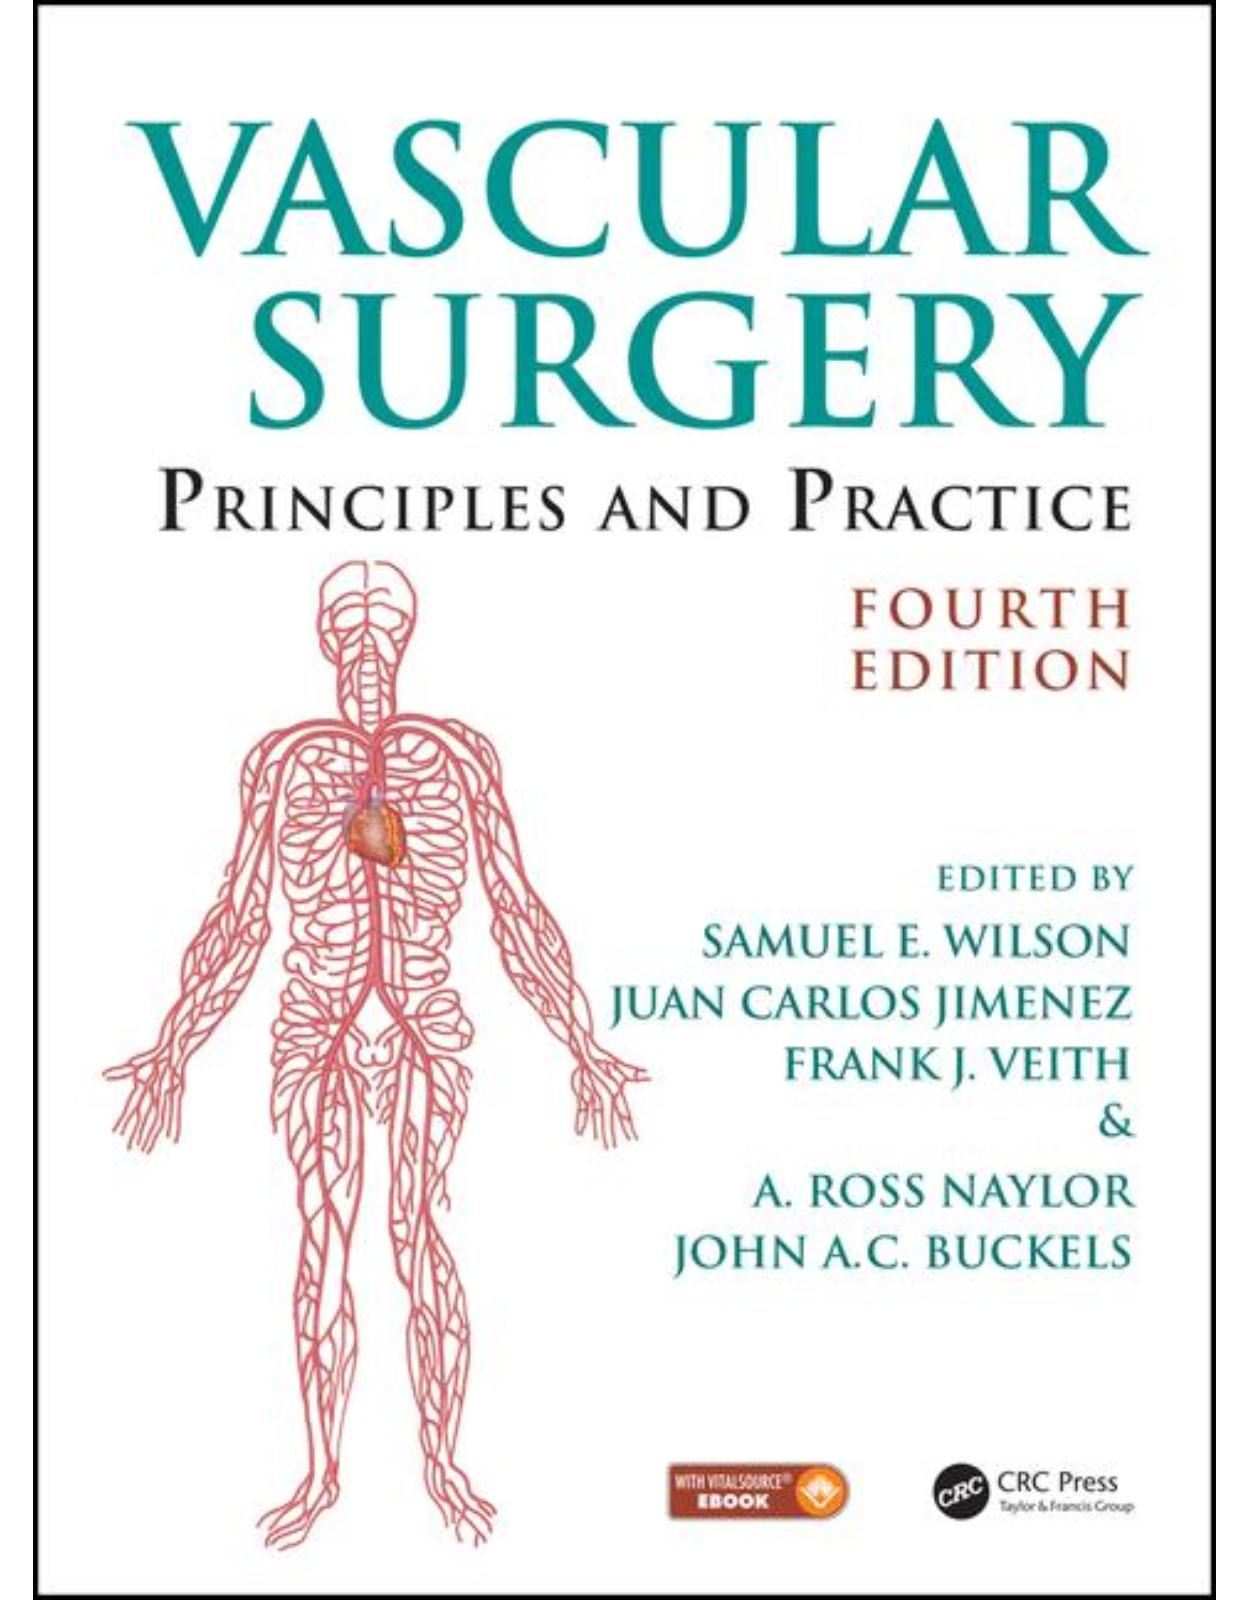 Vascular Surgery: Principles and Practice